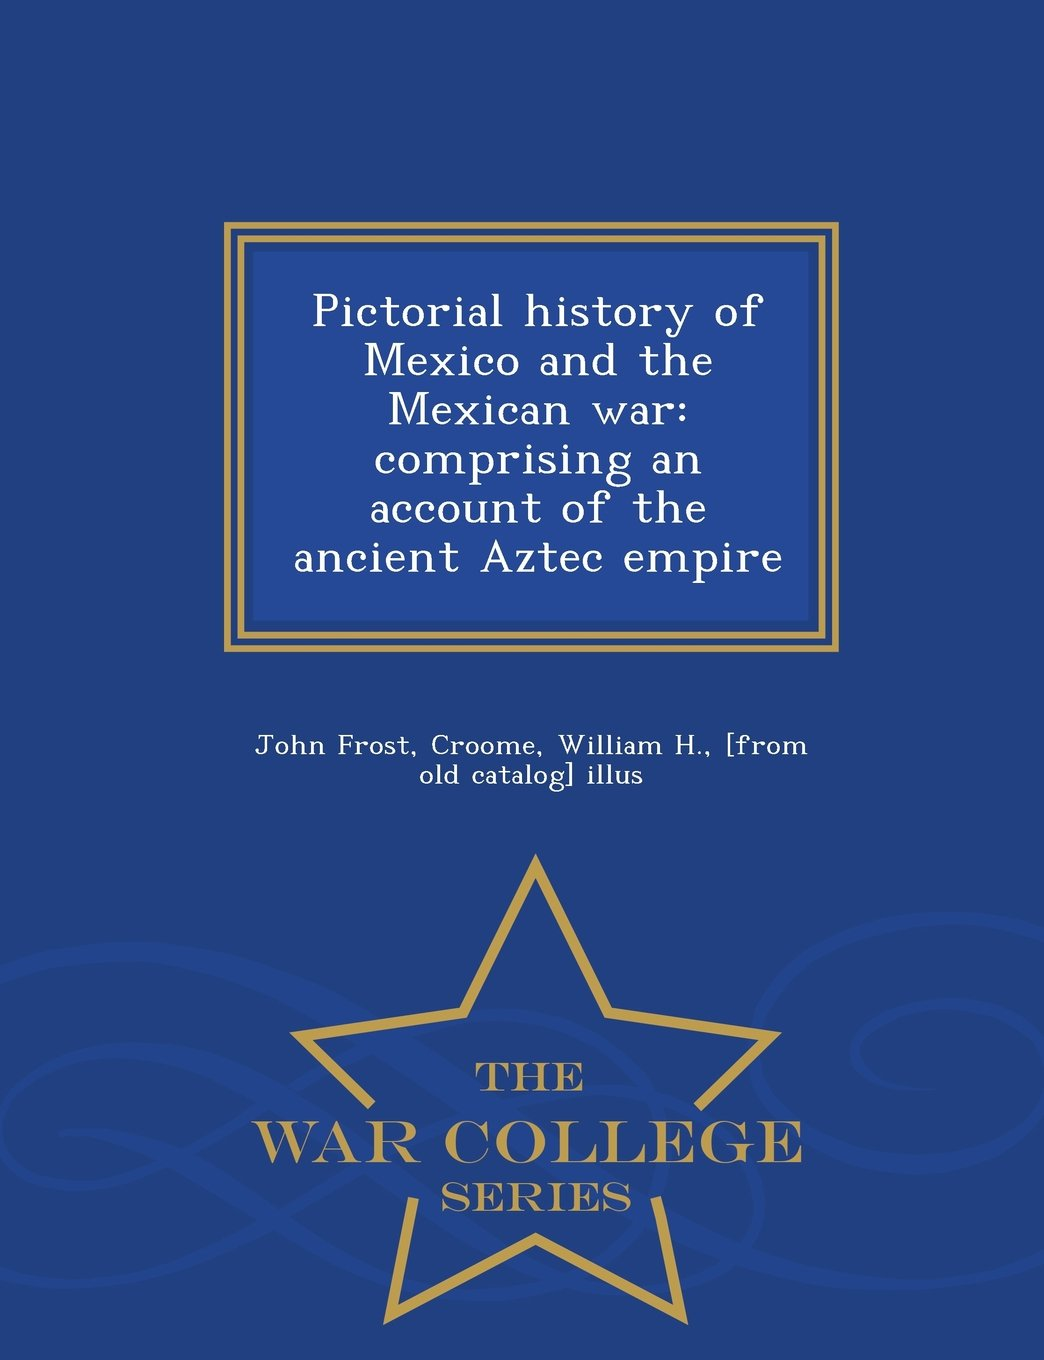 Pictorial history of Mexico and the Mexican war: comprising an account of the ancient Aztec empire  - War College Series